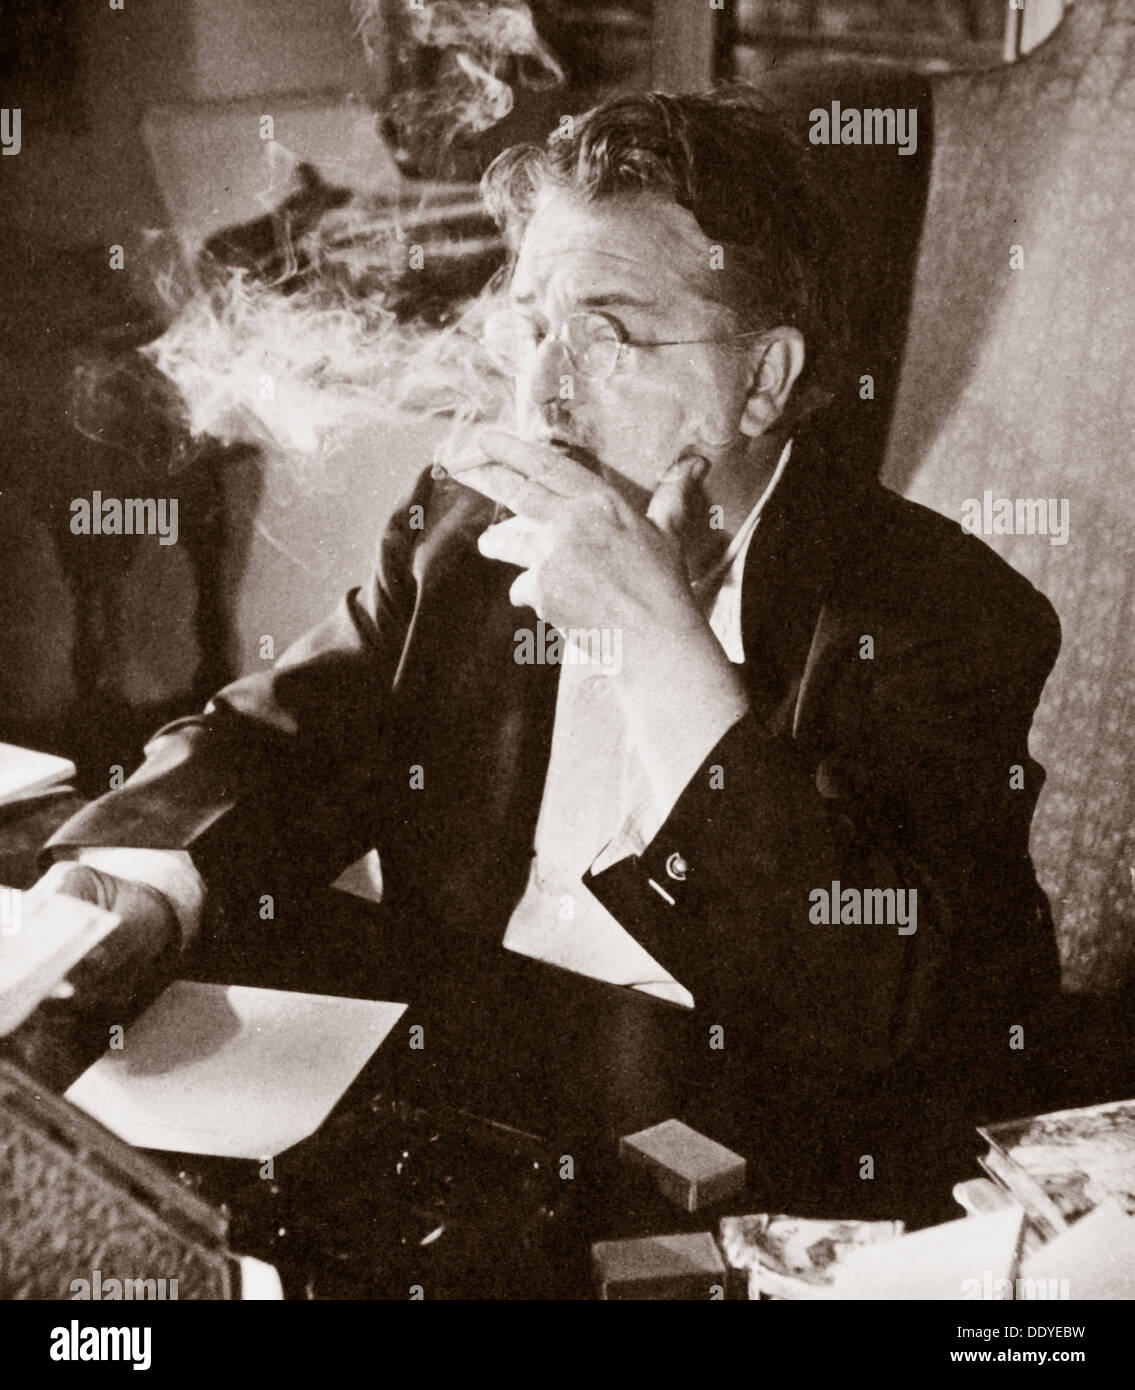 Alexander Woollcott, American critic, raconteur, and radio presenter, early 1930s. Artist: Unknown - Stock Image